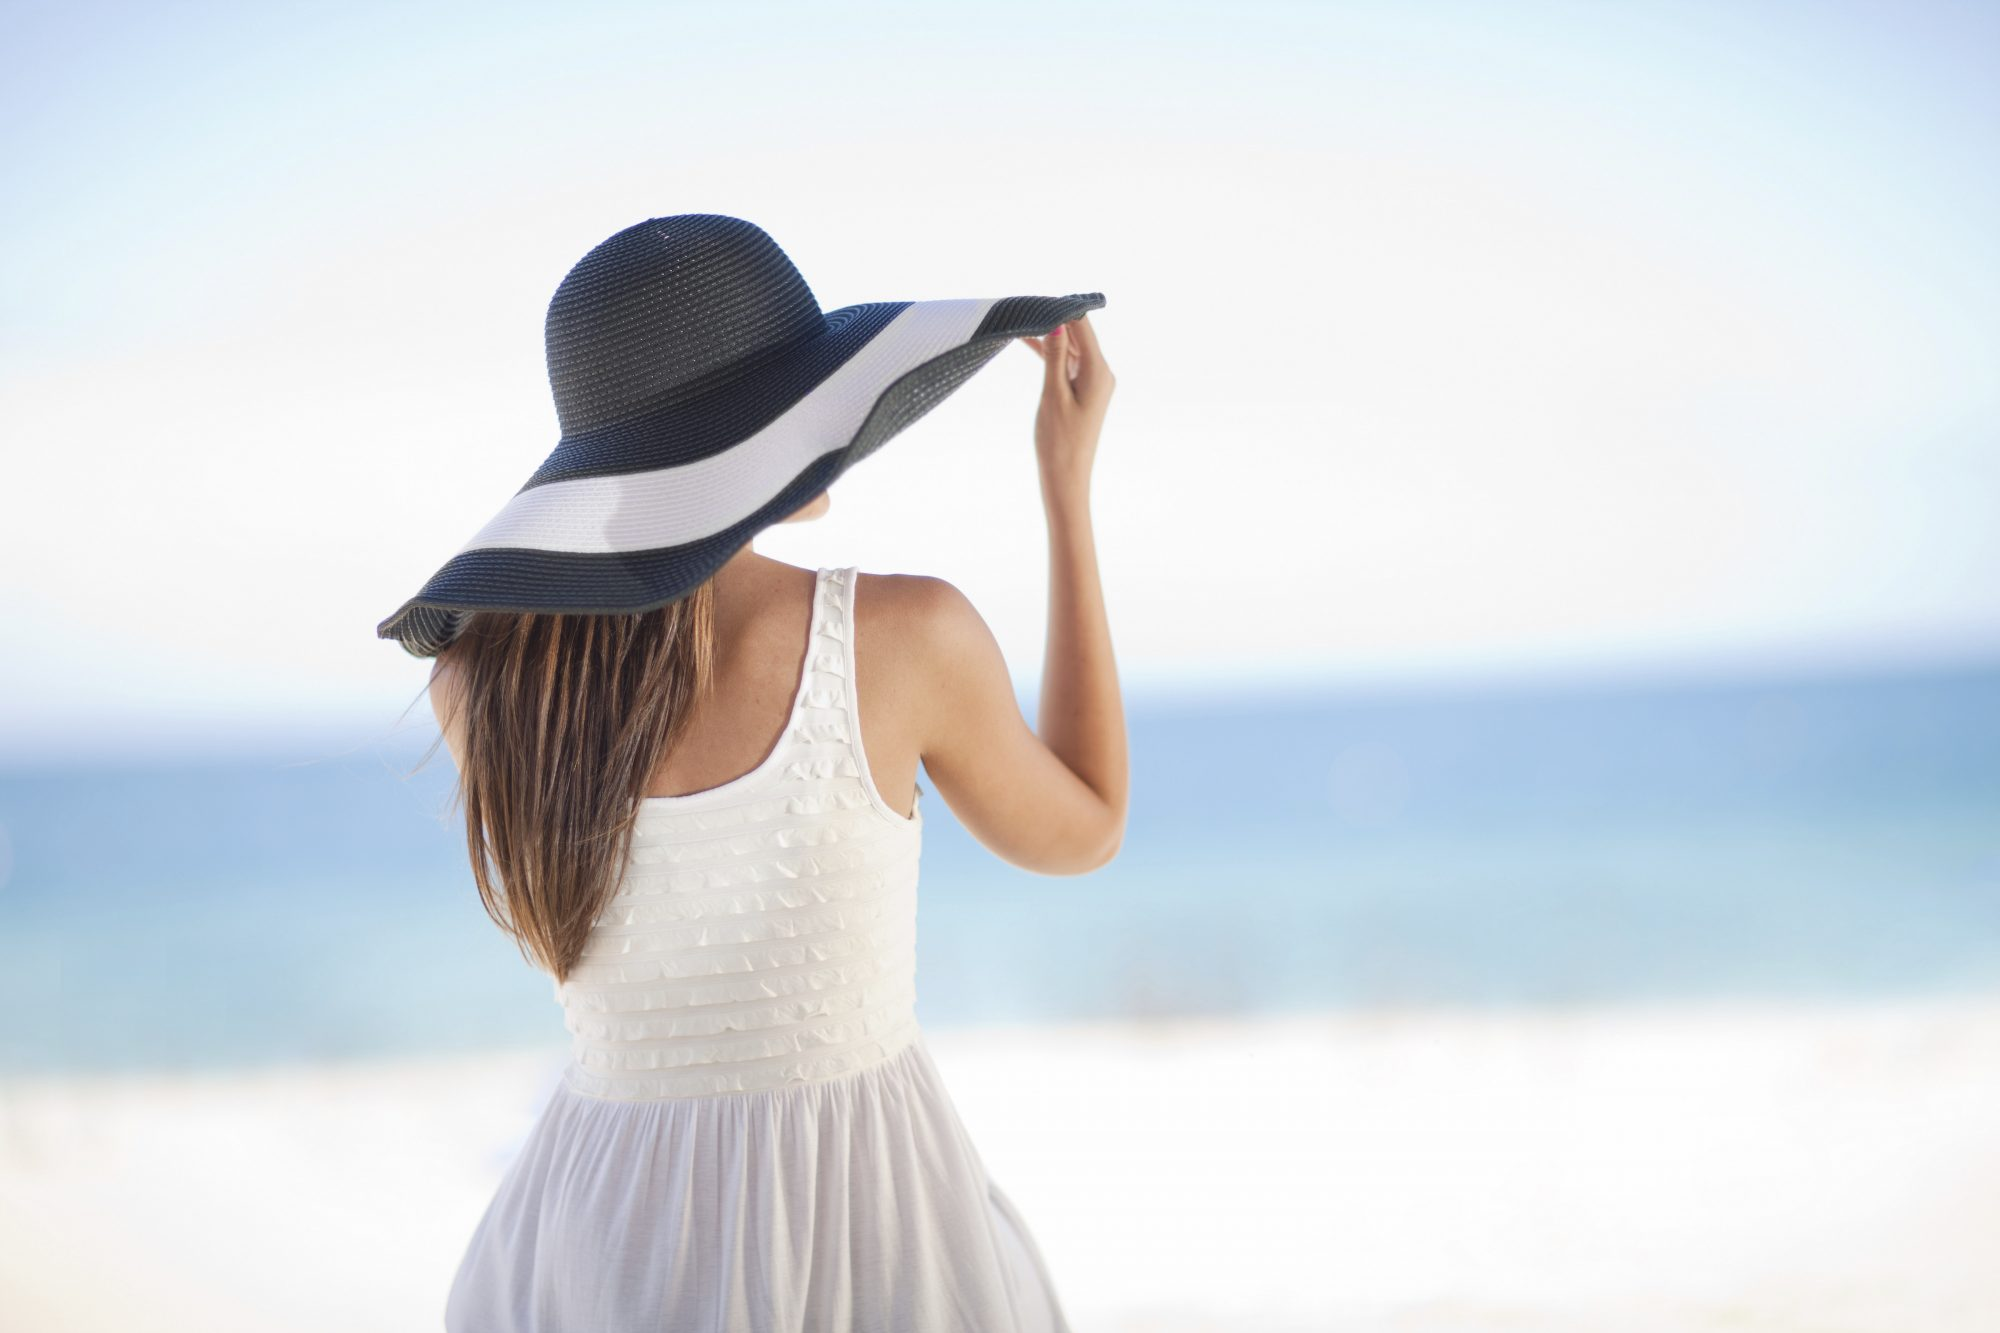 Woman in Sunhat and White Dress